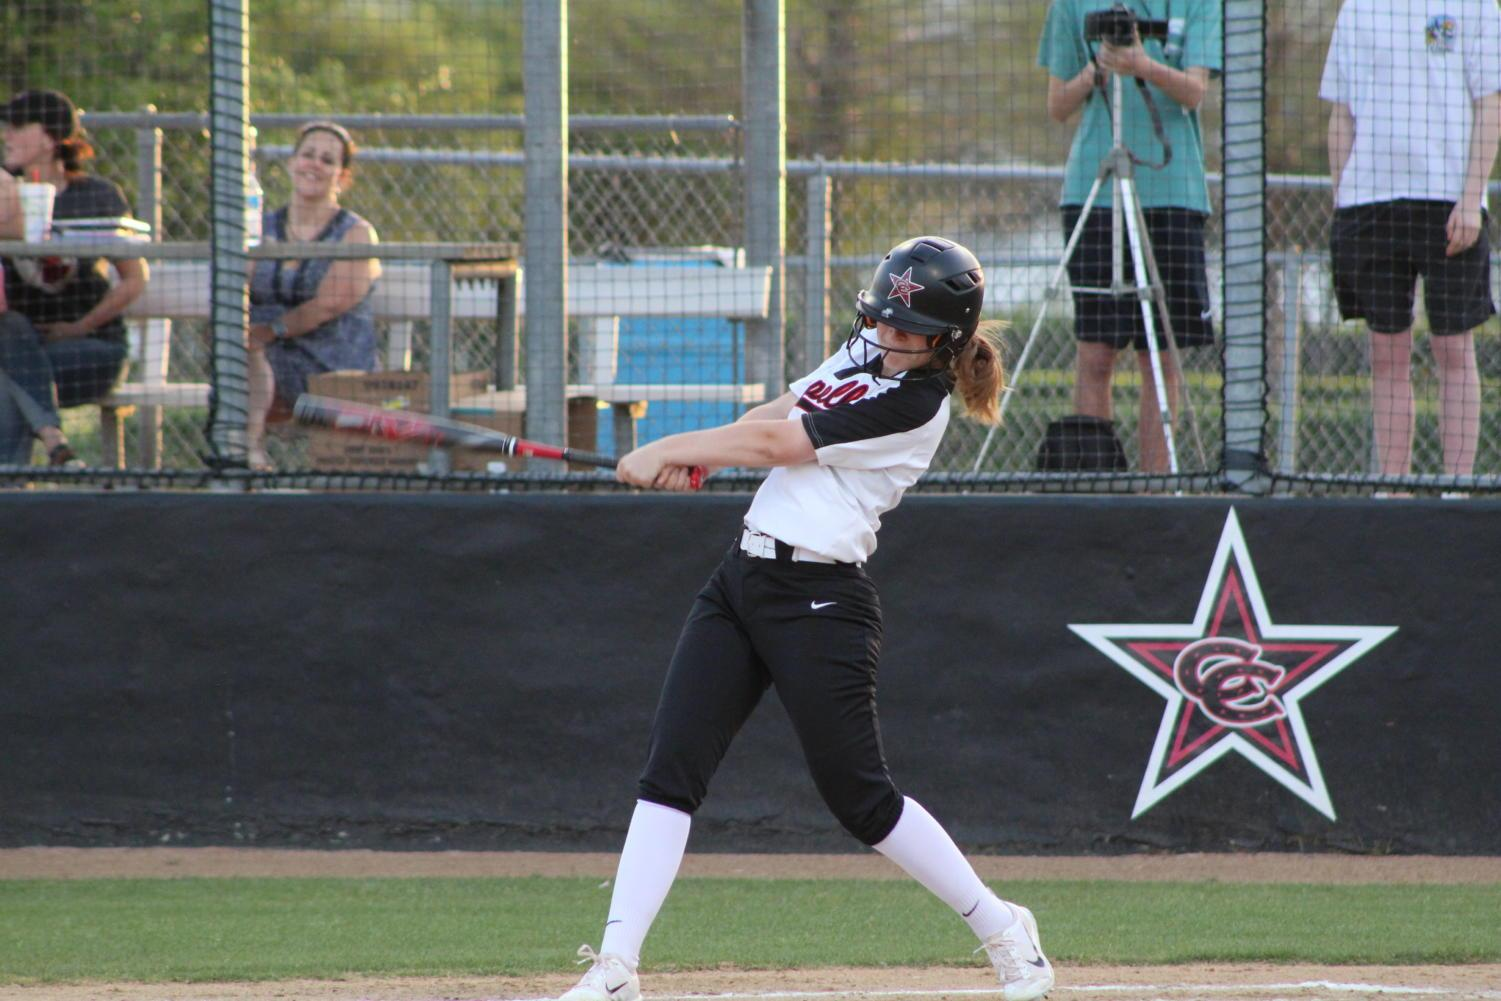 Coppell High School senior and left fielder Claire George hits the ball across the field at the CISD Baseball/Softball Complex  on Tuesday night. The Cowgirls varsity softball team won Tuesday night's home conference game against the Berkner Lady Rams with  a score of 2-1.